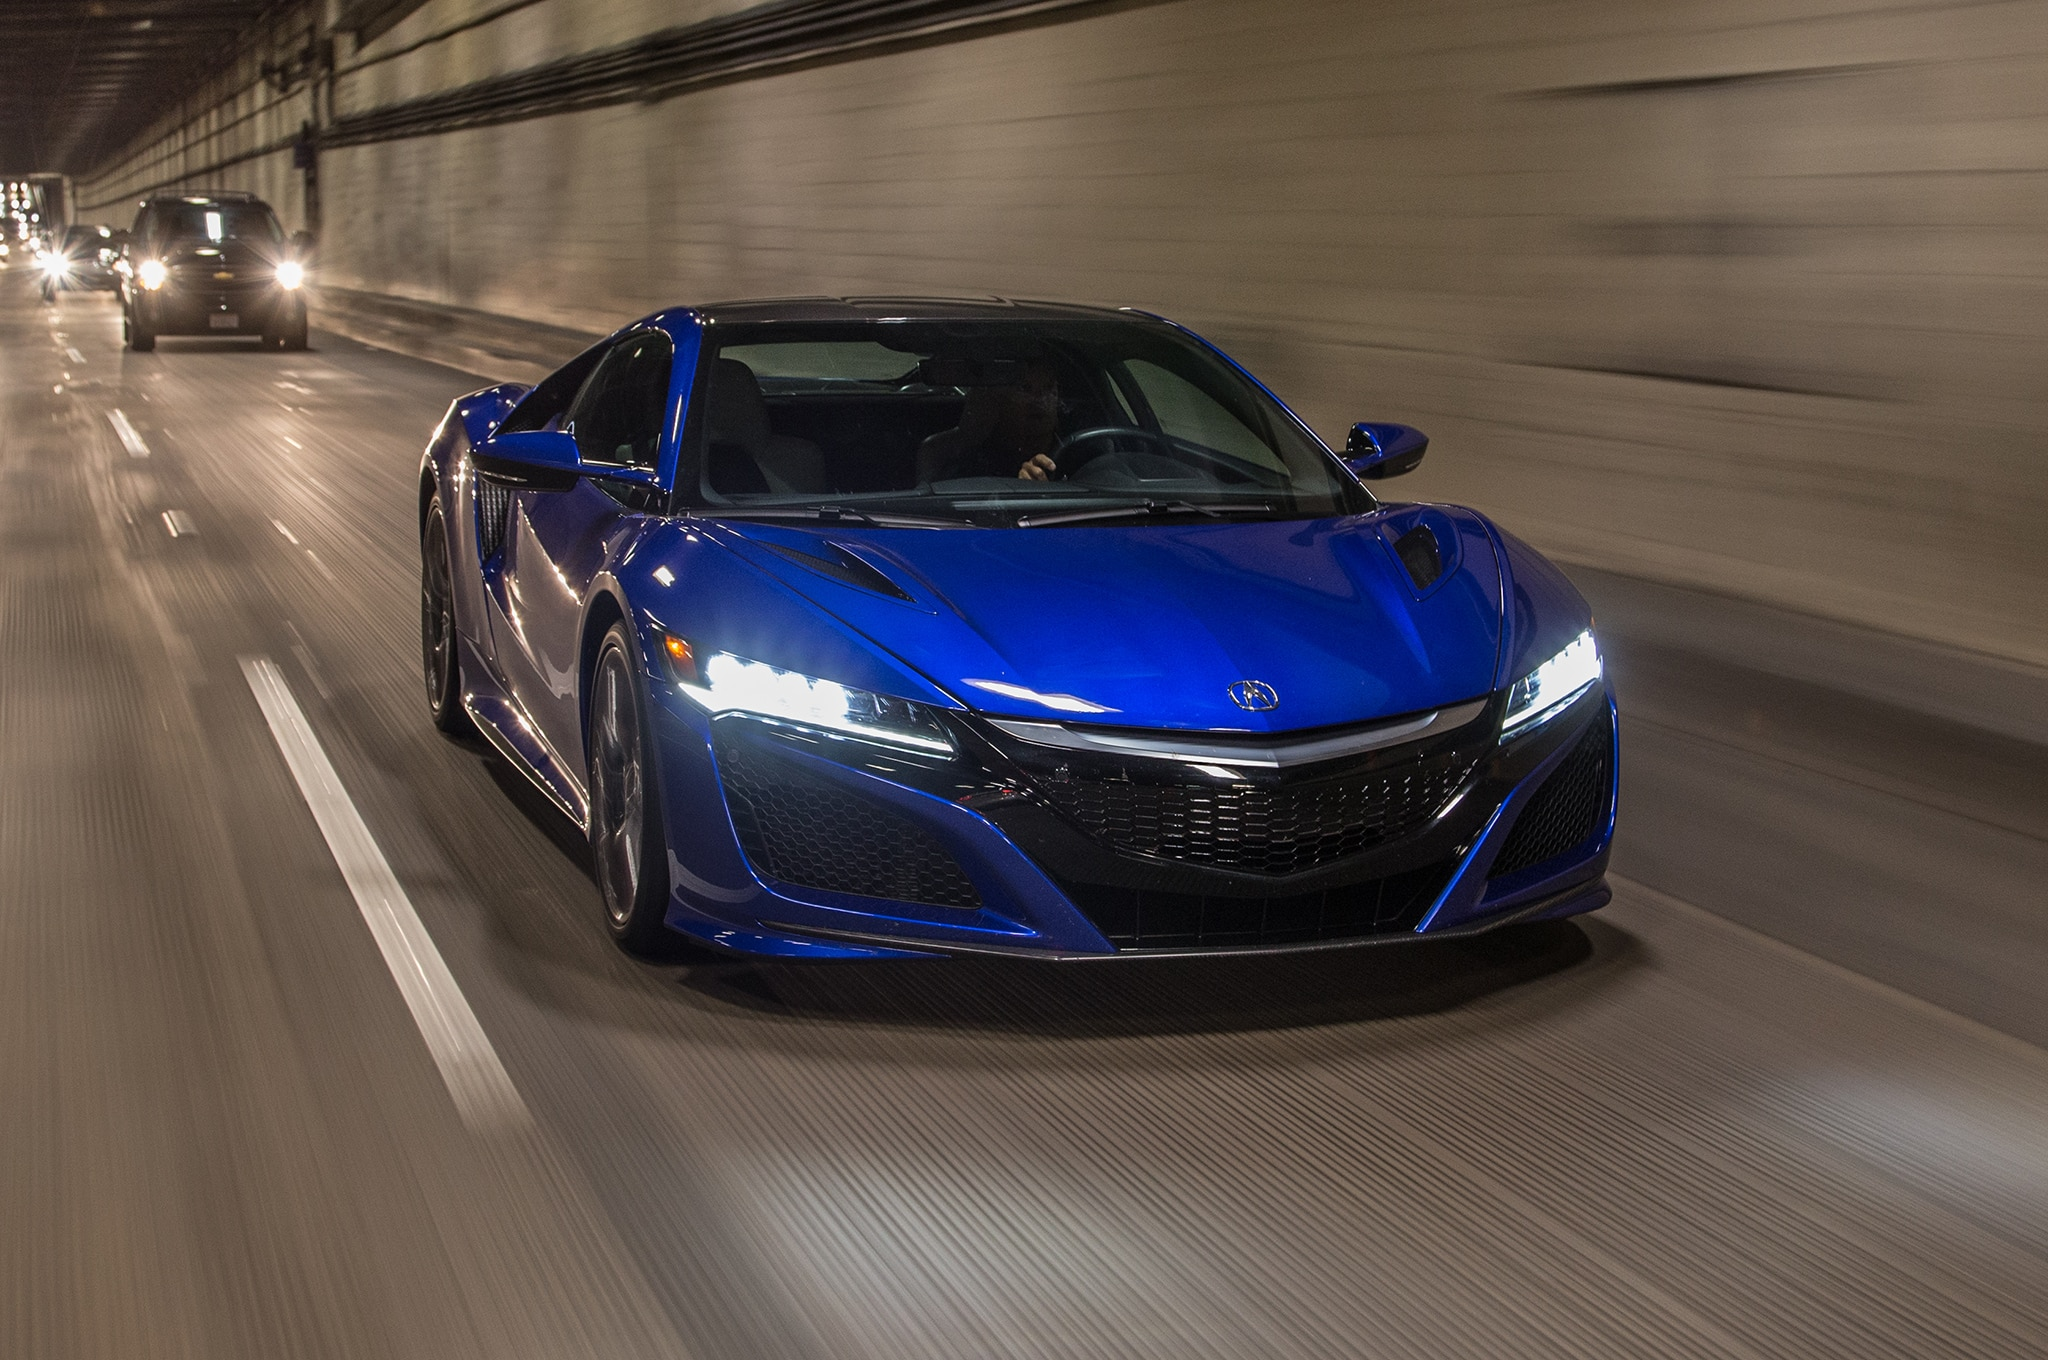 2017 Acura NSX Goes Head 2 Head with Nissan GT-R